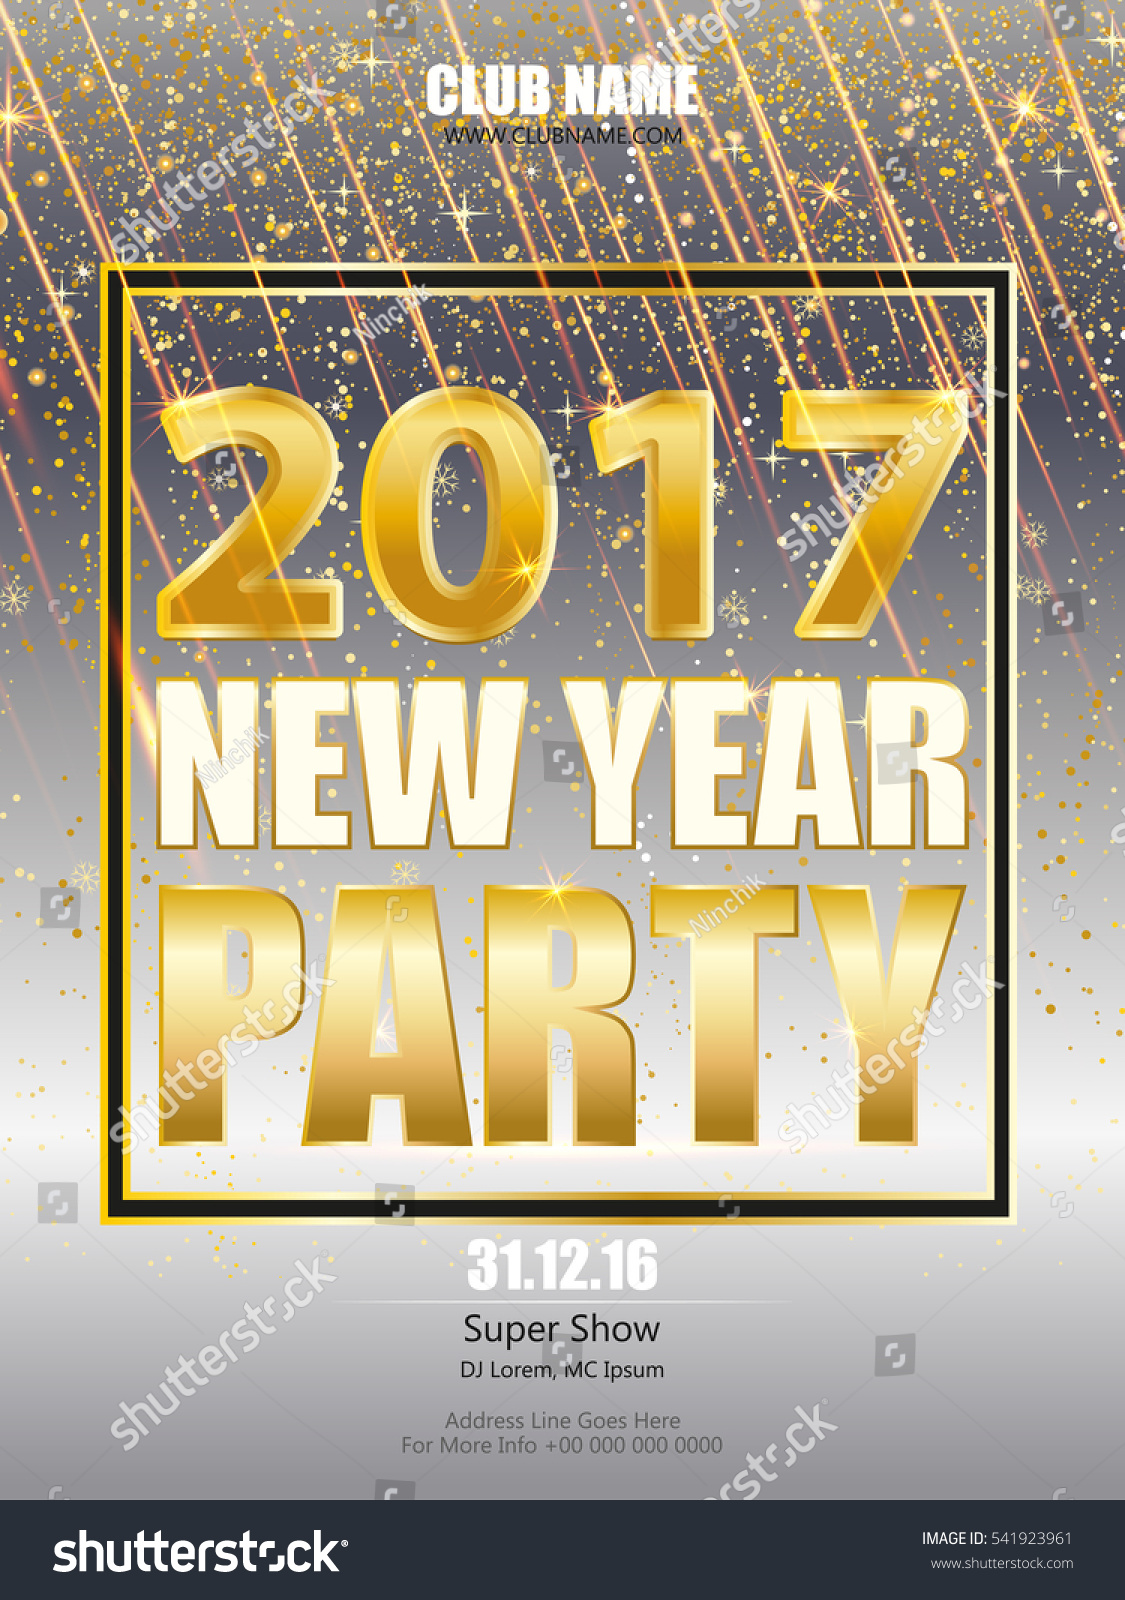 Shiny Flyer, Banner or Pamphlet for New Year's 2017 Eve Party celebration. invitation, poster, greeting card, design template. #541923961